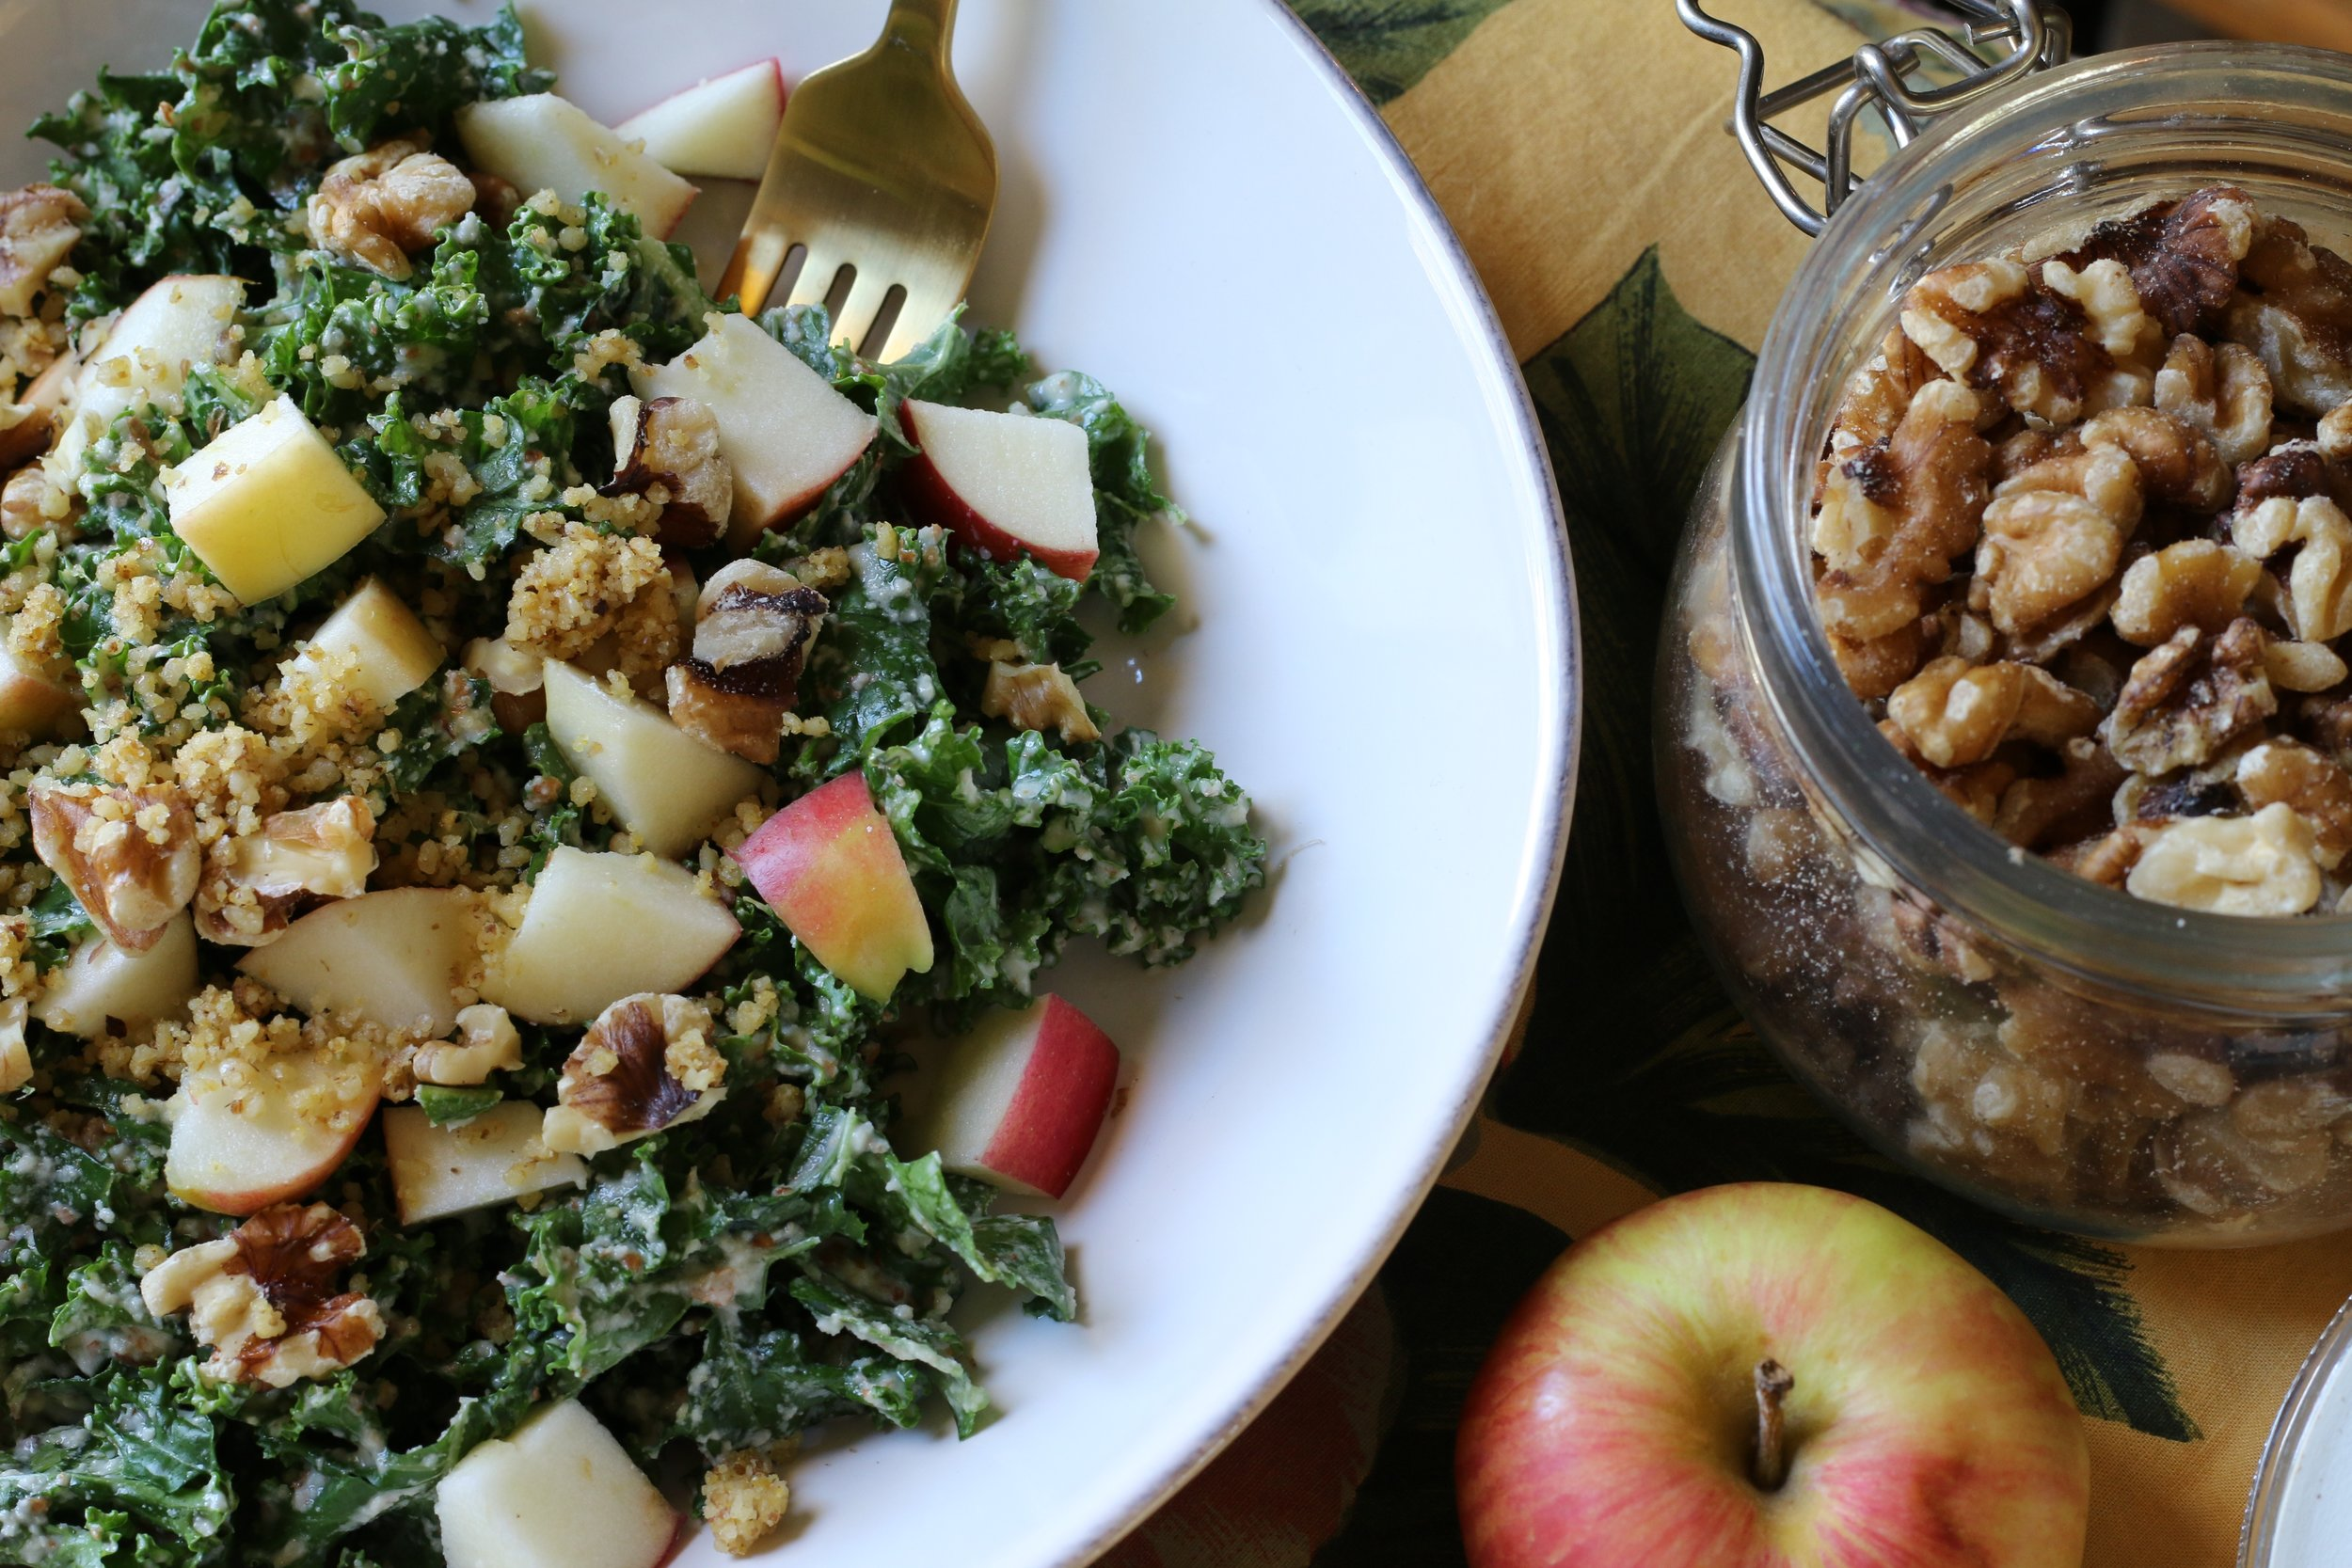 Kale Salad with Almond Ginger Dressing